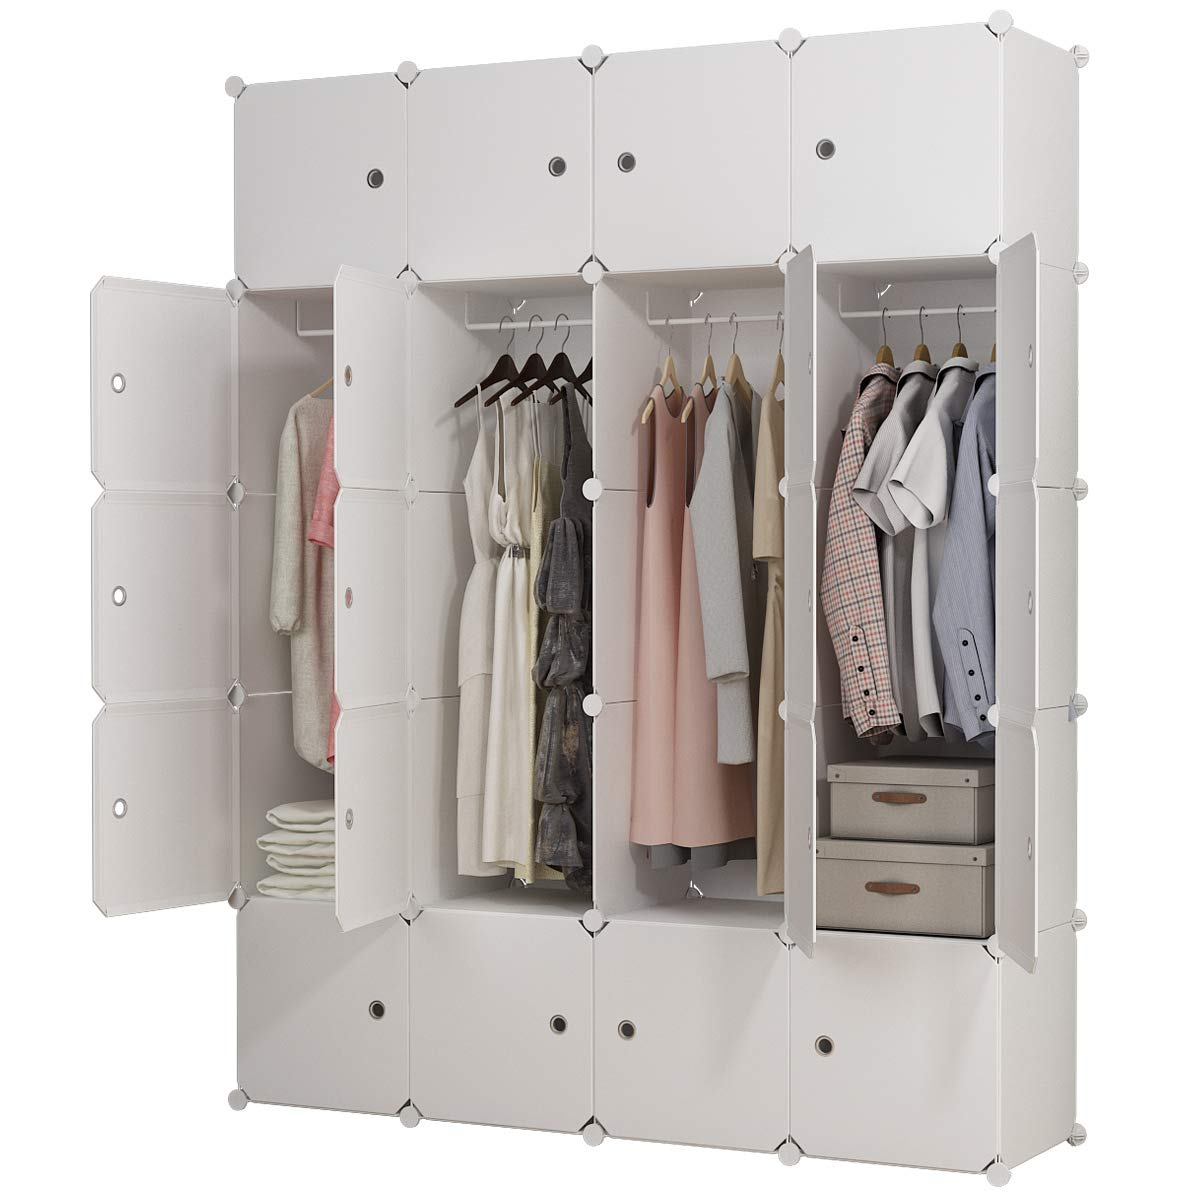 KOUSI Portable Clothes Closet Clothing Storage Plastic Dresser Shelves  Armoire Wardrobe Moving Boxes Rack Bins Shelf Closet for Bedroom Organizers  and ...